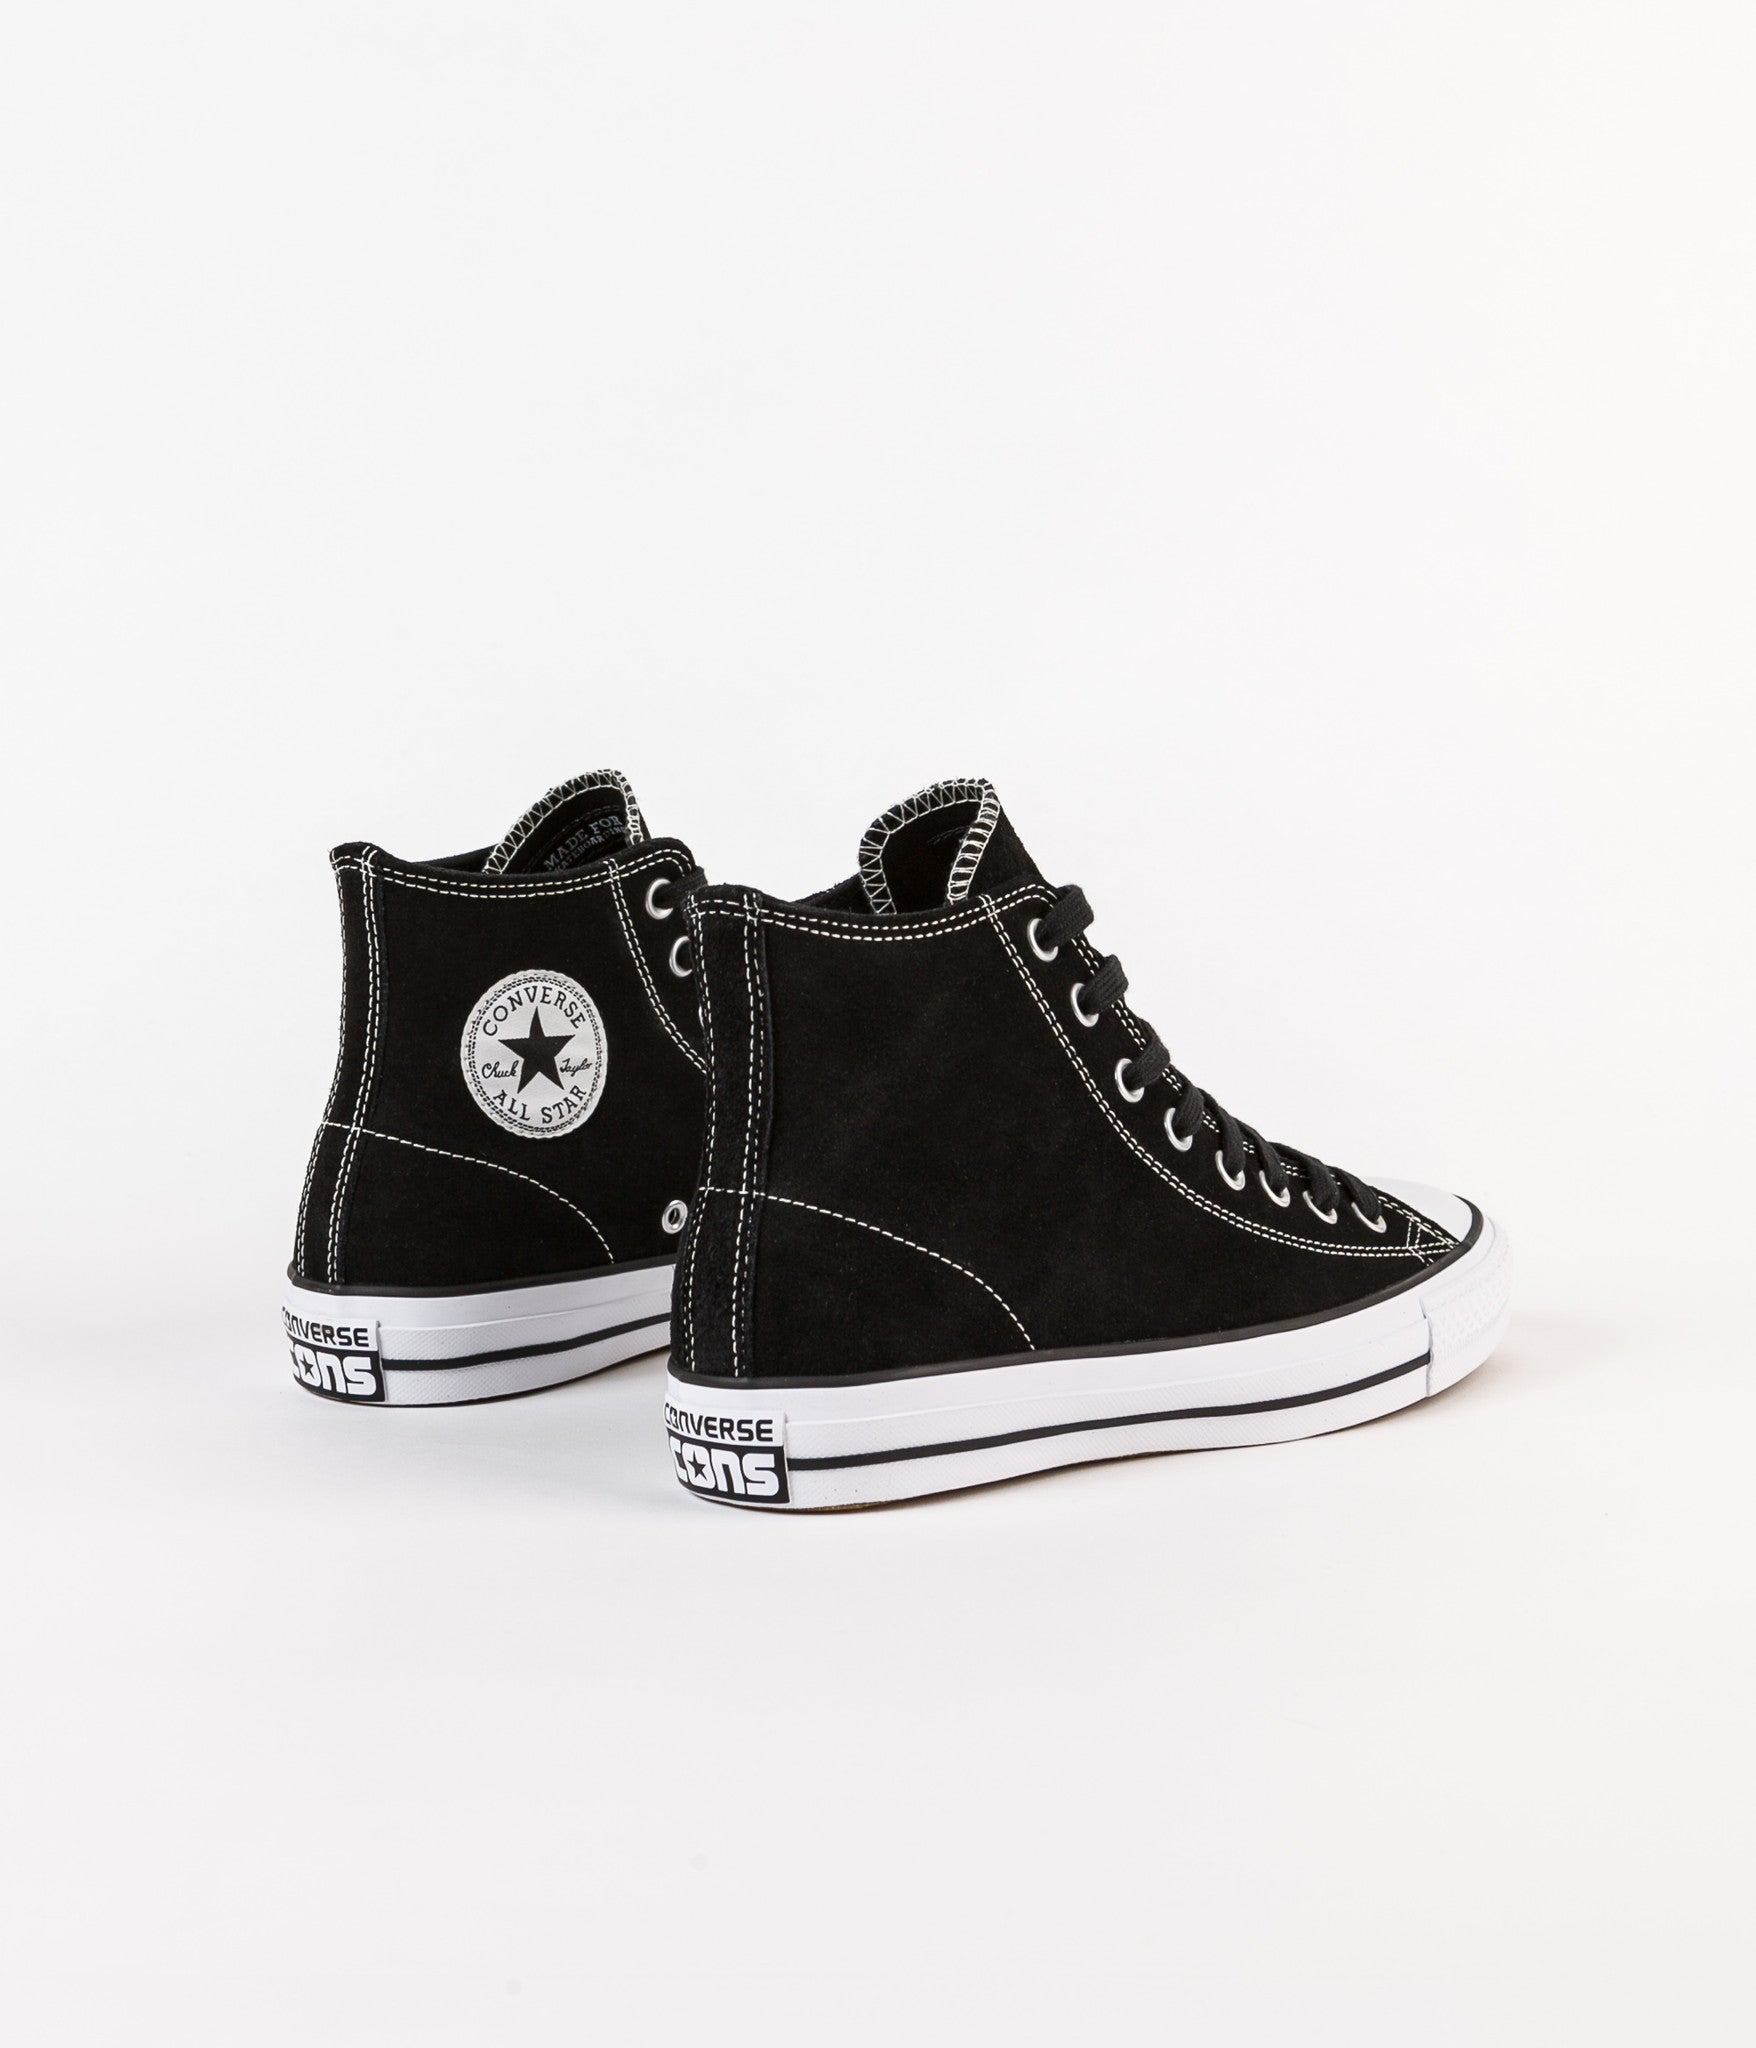 db35a600520039 Converse CTAS Pro Hi Shoes - Black   White